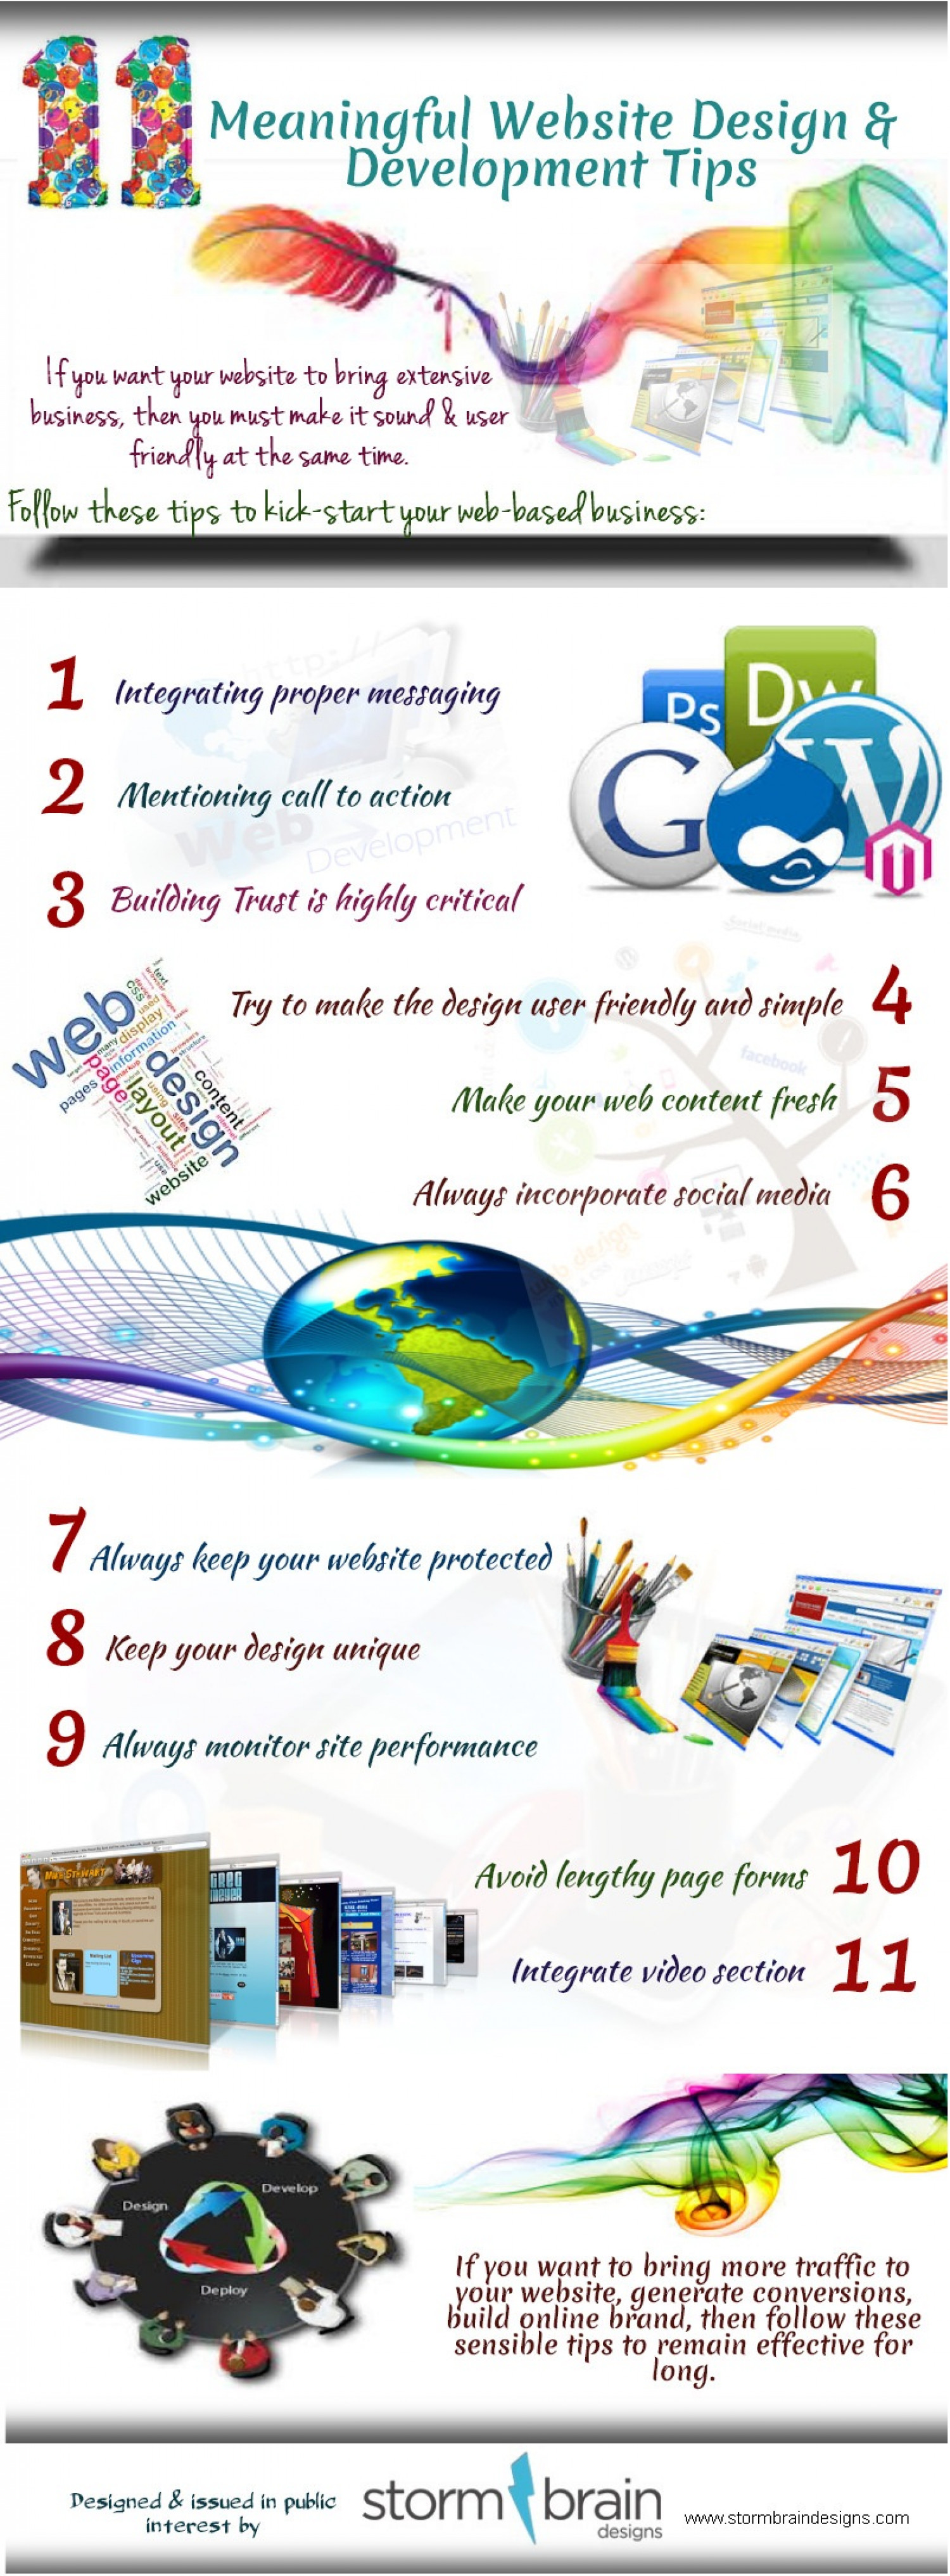 11 Meaningful Website Design and Development Tips Infographic